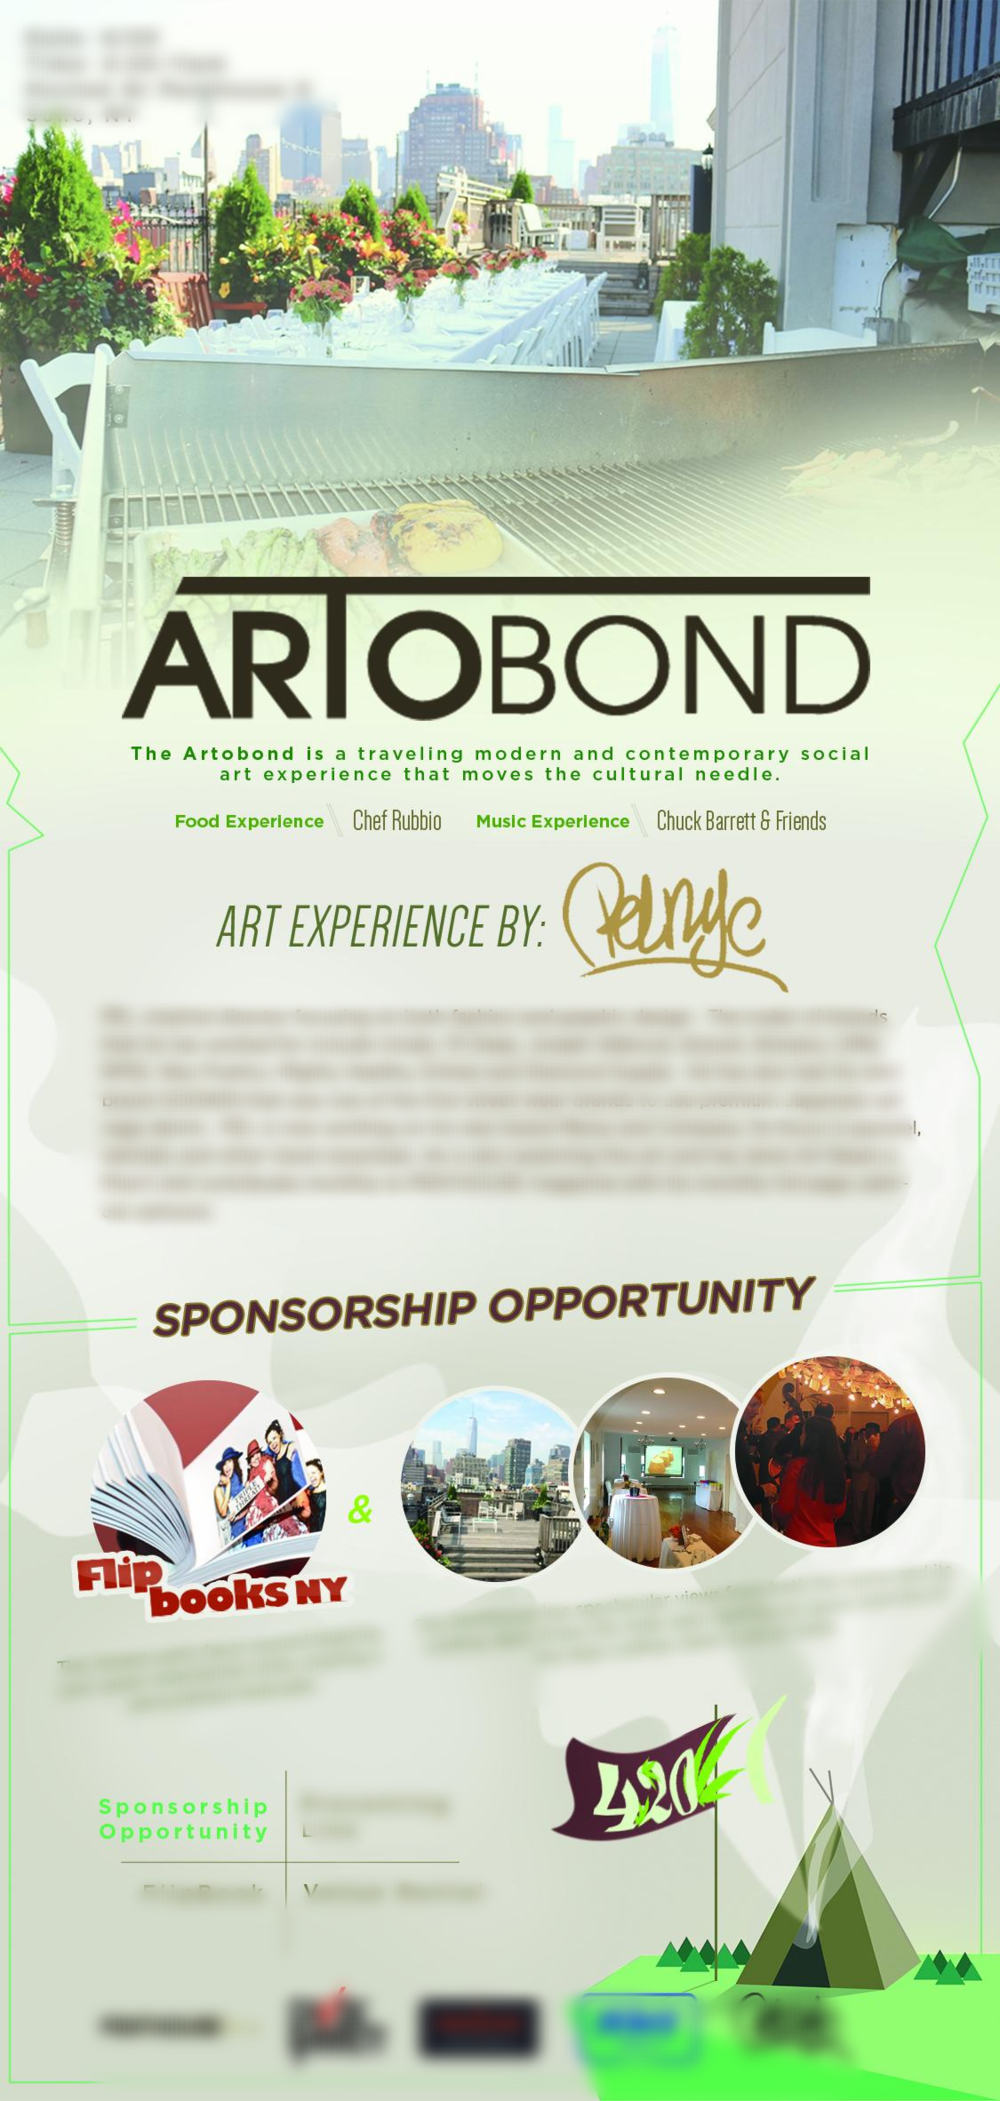 Artobond-One-Sheet-grey.jpg